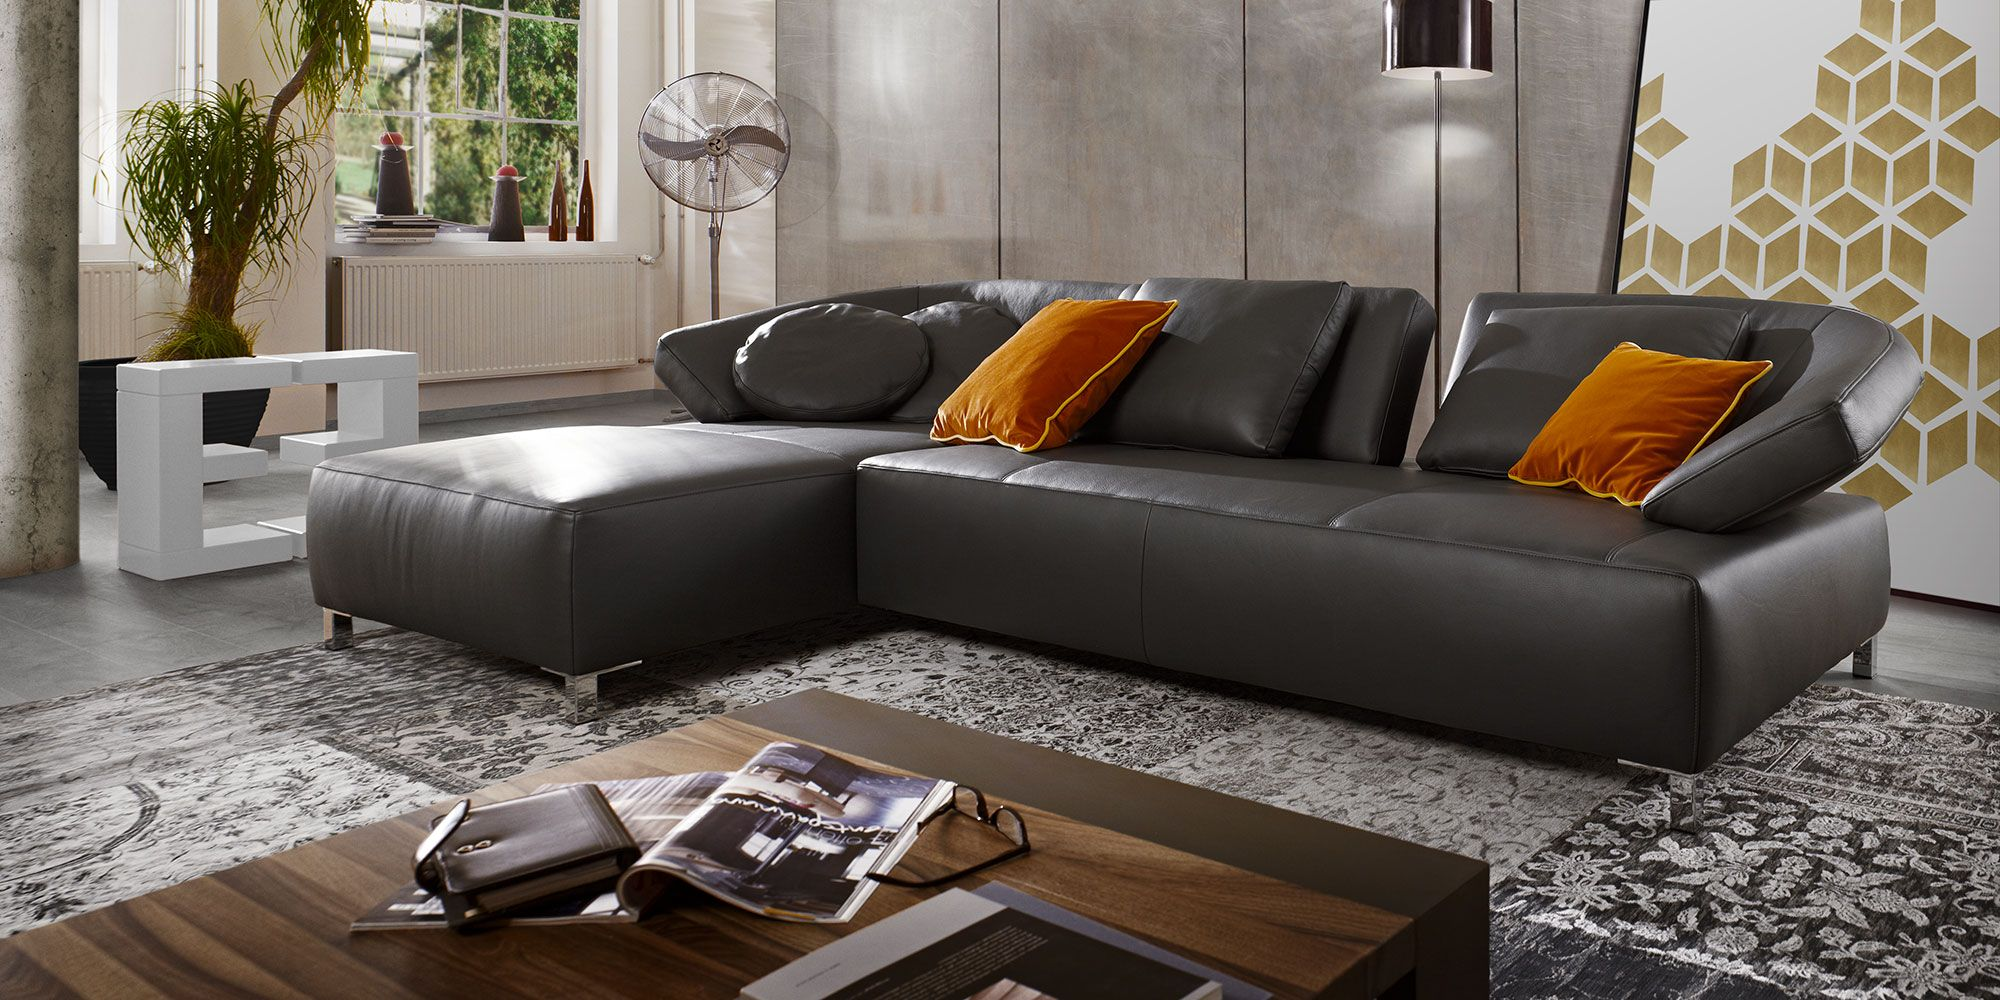 26 best sofa bestseller ewald schillig brand funktionssofas 26 best sofa bestseller ewald schillig brand funktionssofas sofasysteme images on pinterest homes camera angle and green color schemes parisarafo Images